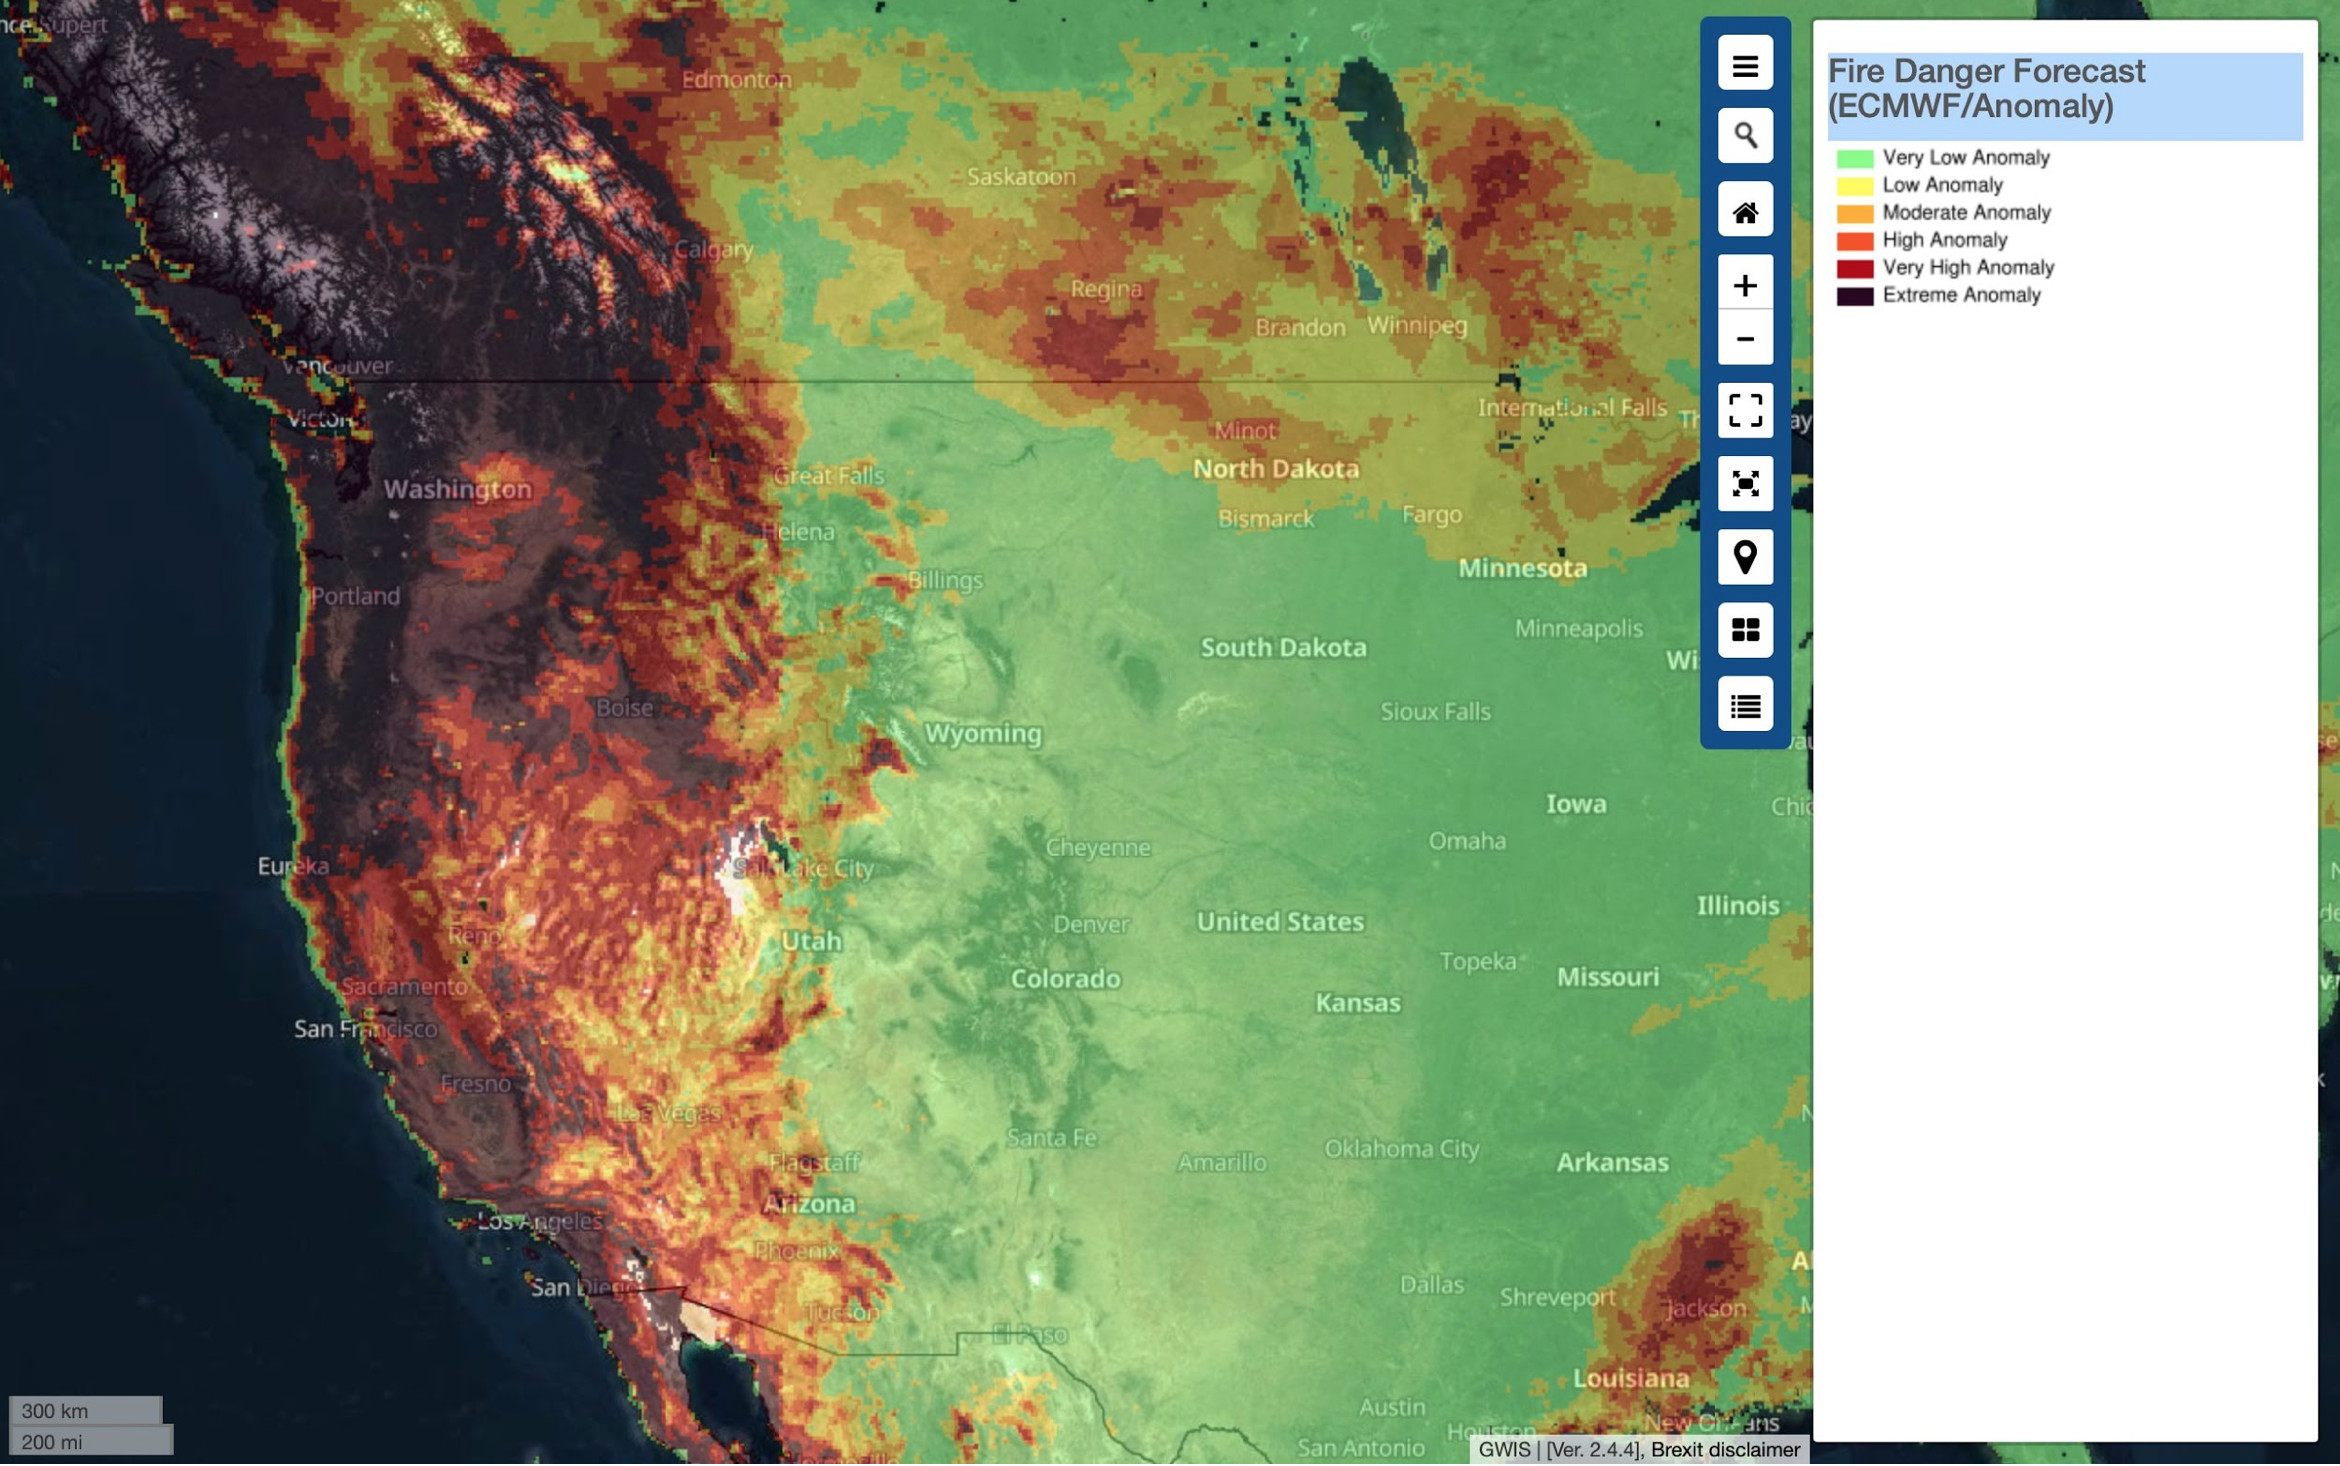 Image shows the anomaly rate and Fire Danger Forecast for wildfires in California and Oregon, USA, from the Global Wildfire Information System (GWIS) on 21 September 2020. Image via Copernicus EU.